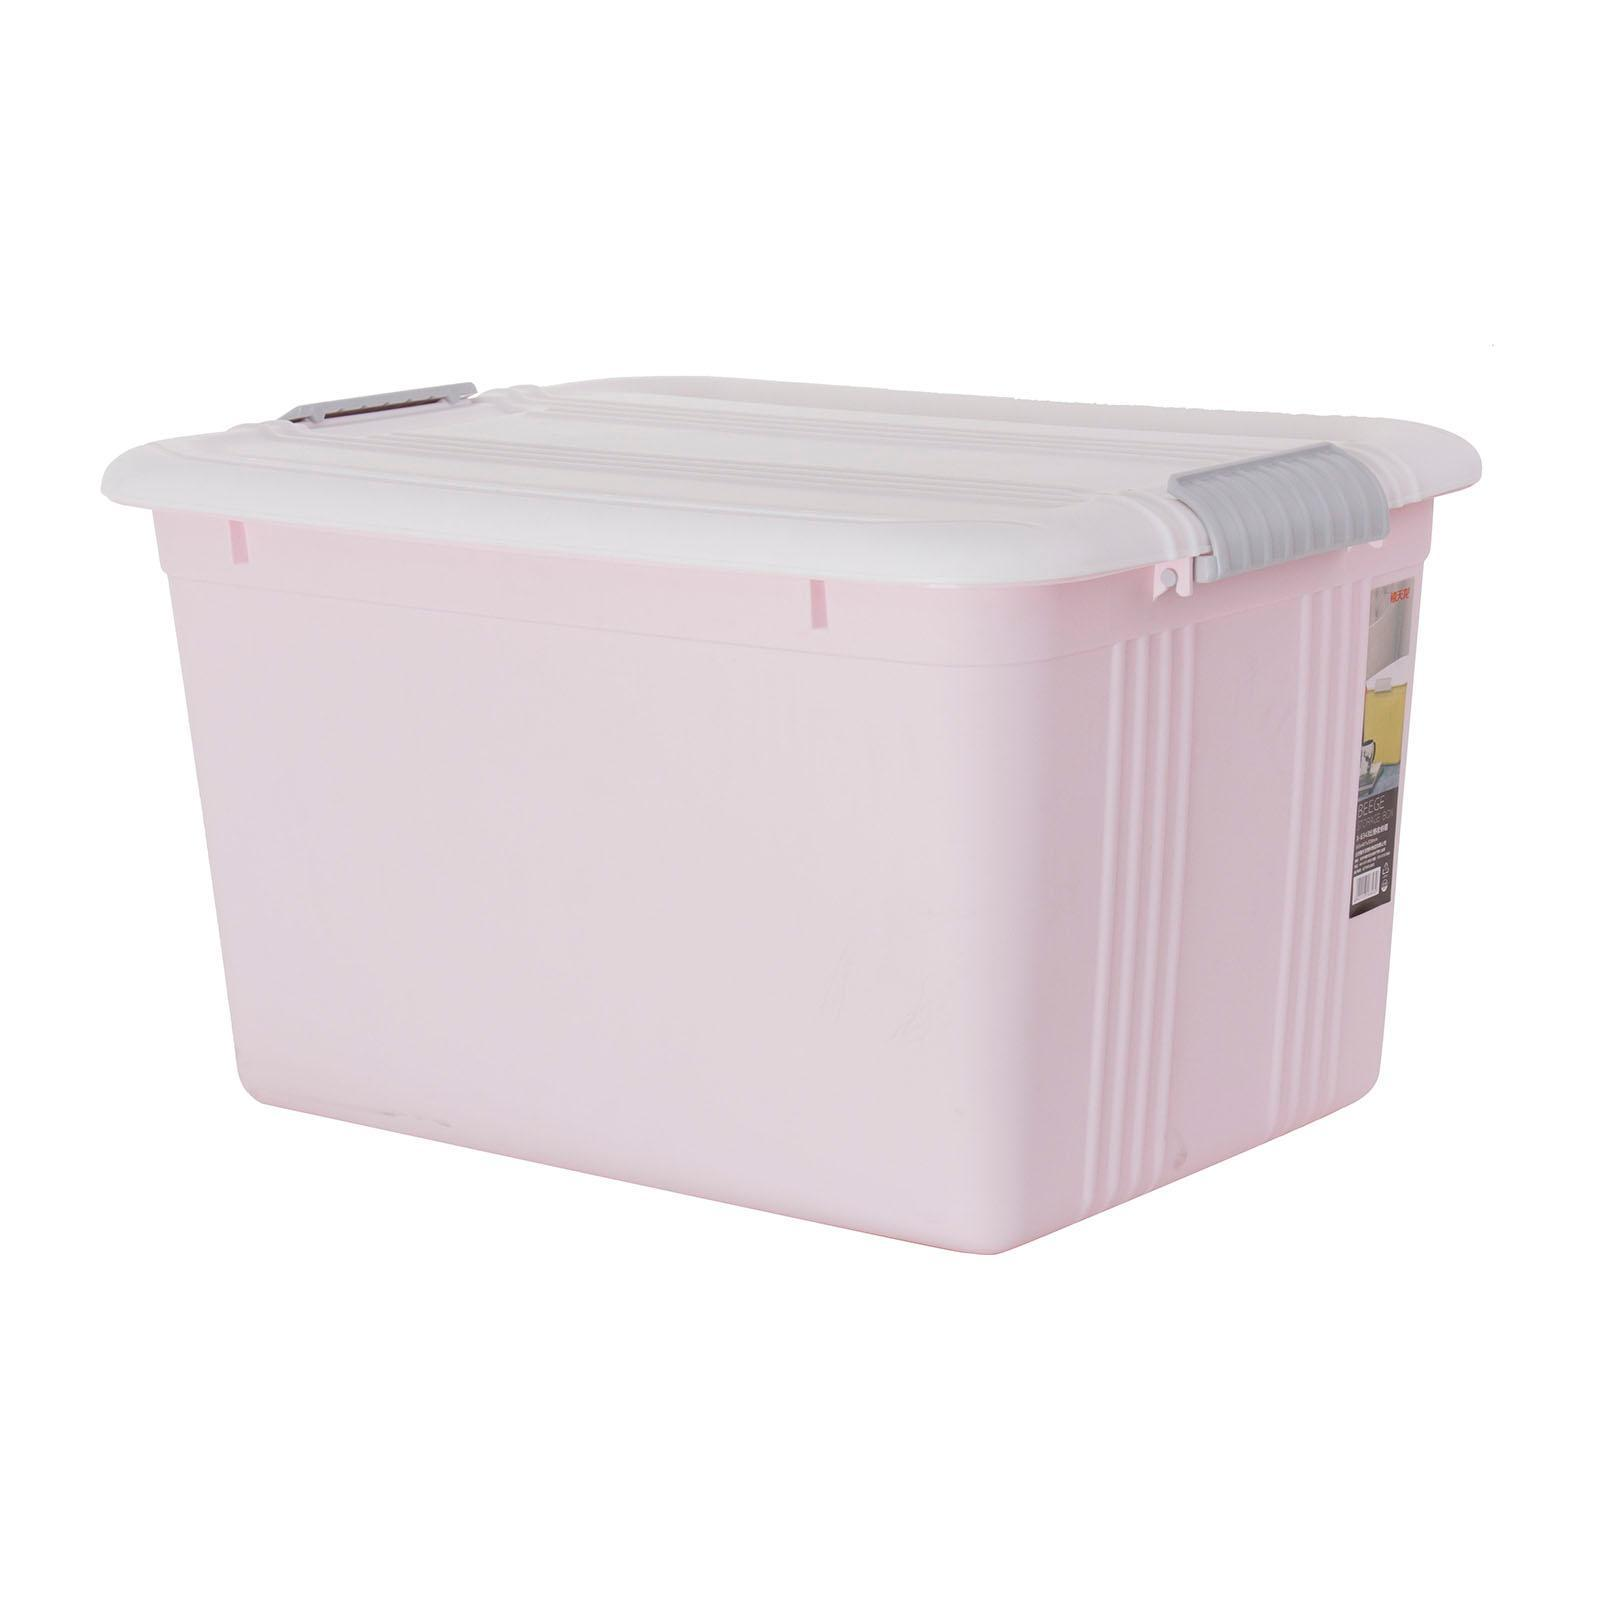 CITYLIFE 50L Storage Container W/O Wheels